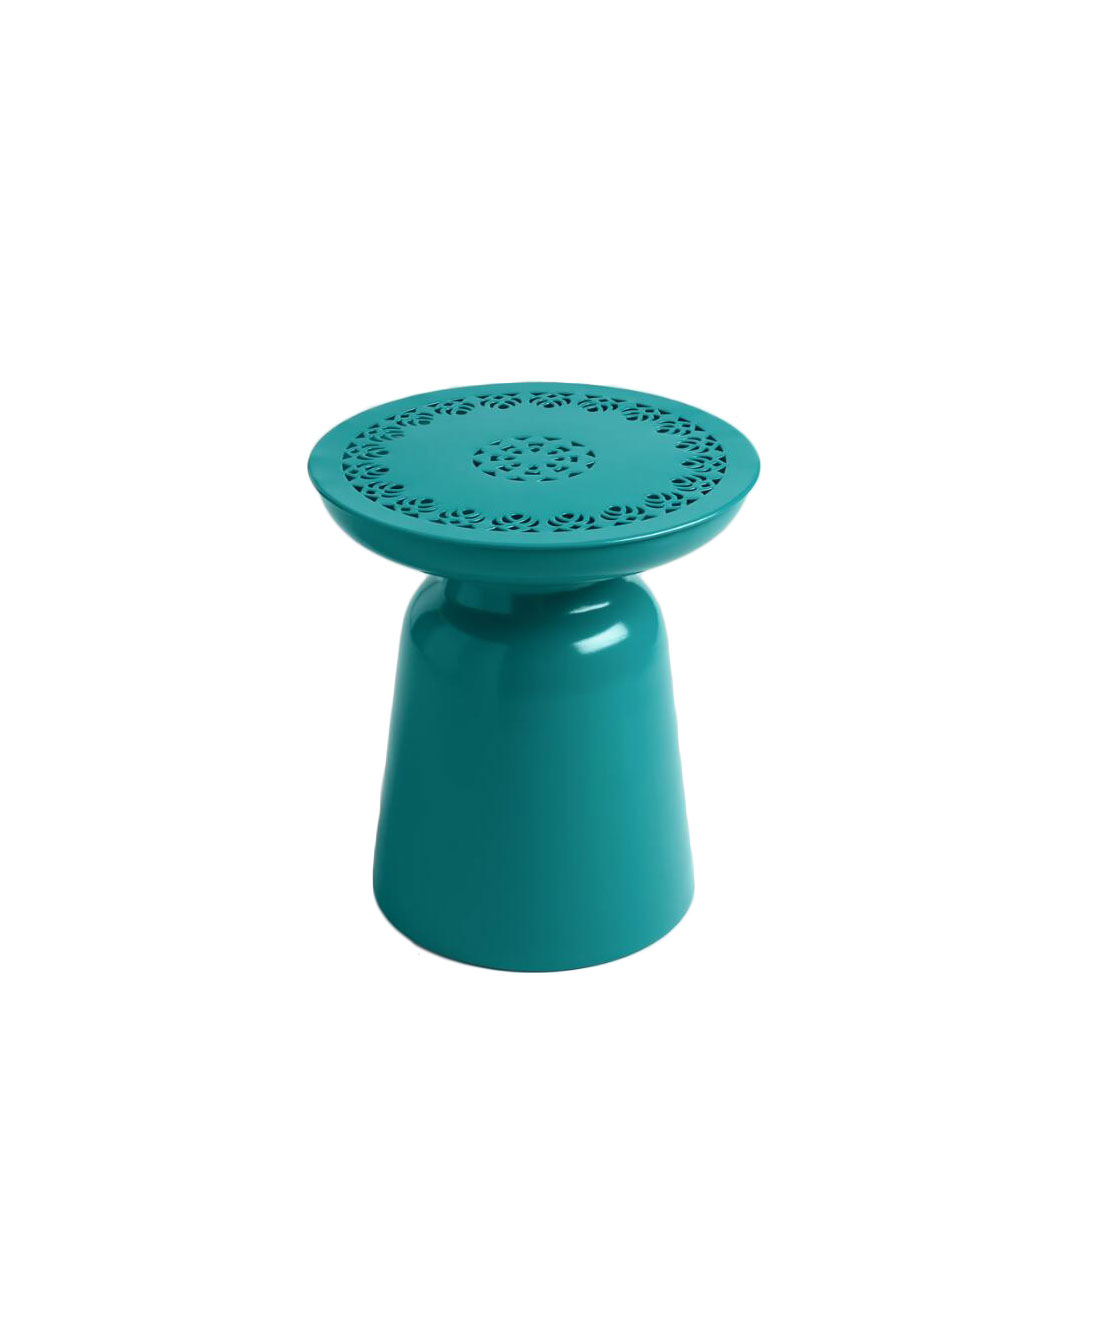 Turquoise Punched Metal Dimitri Drum Stool